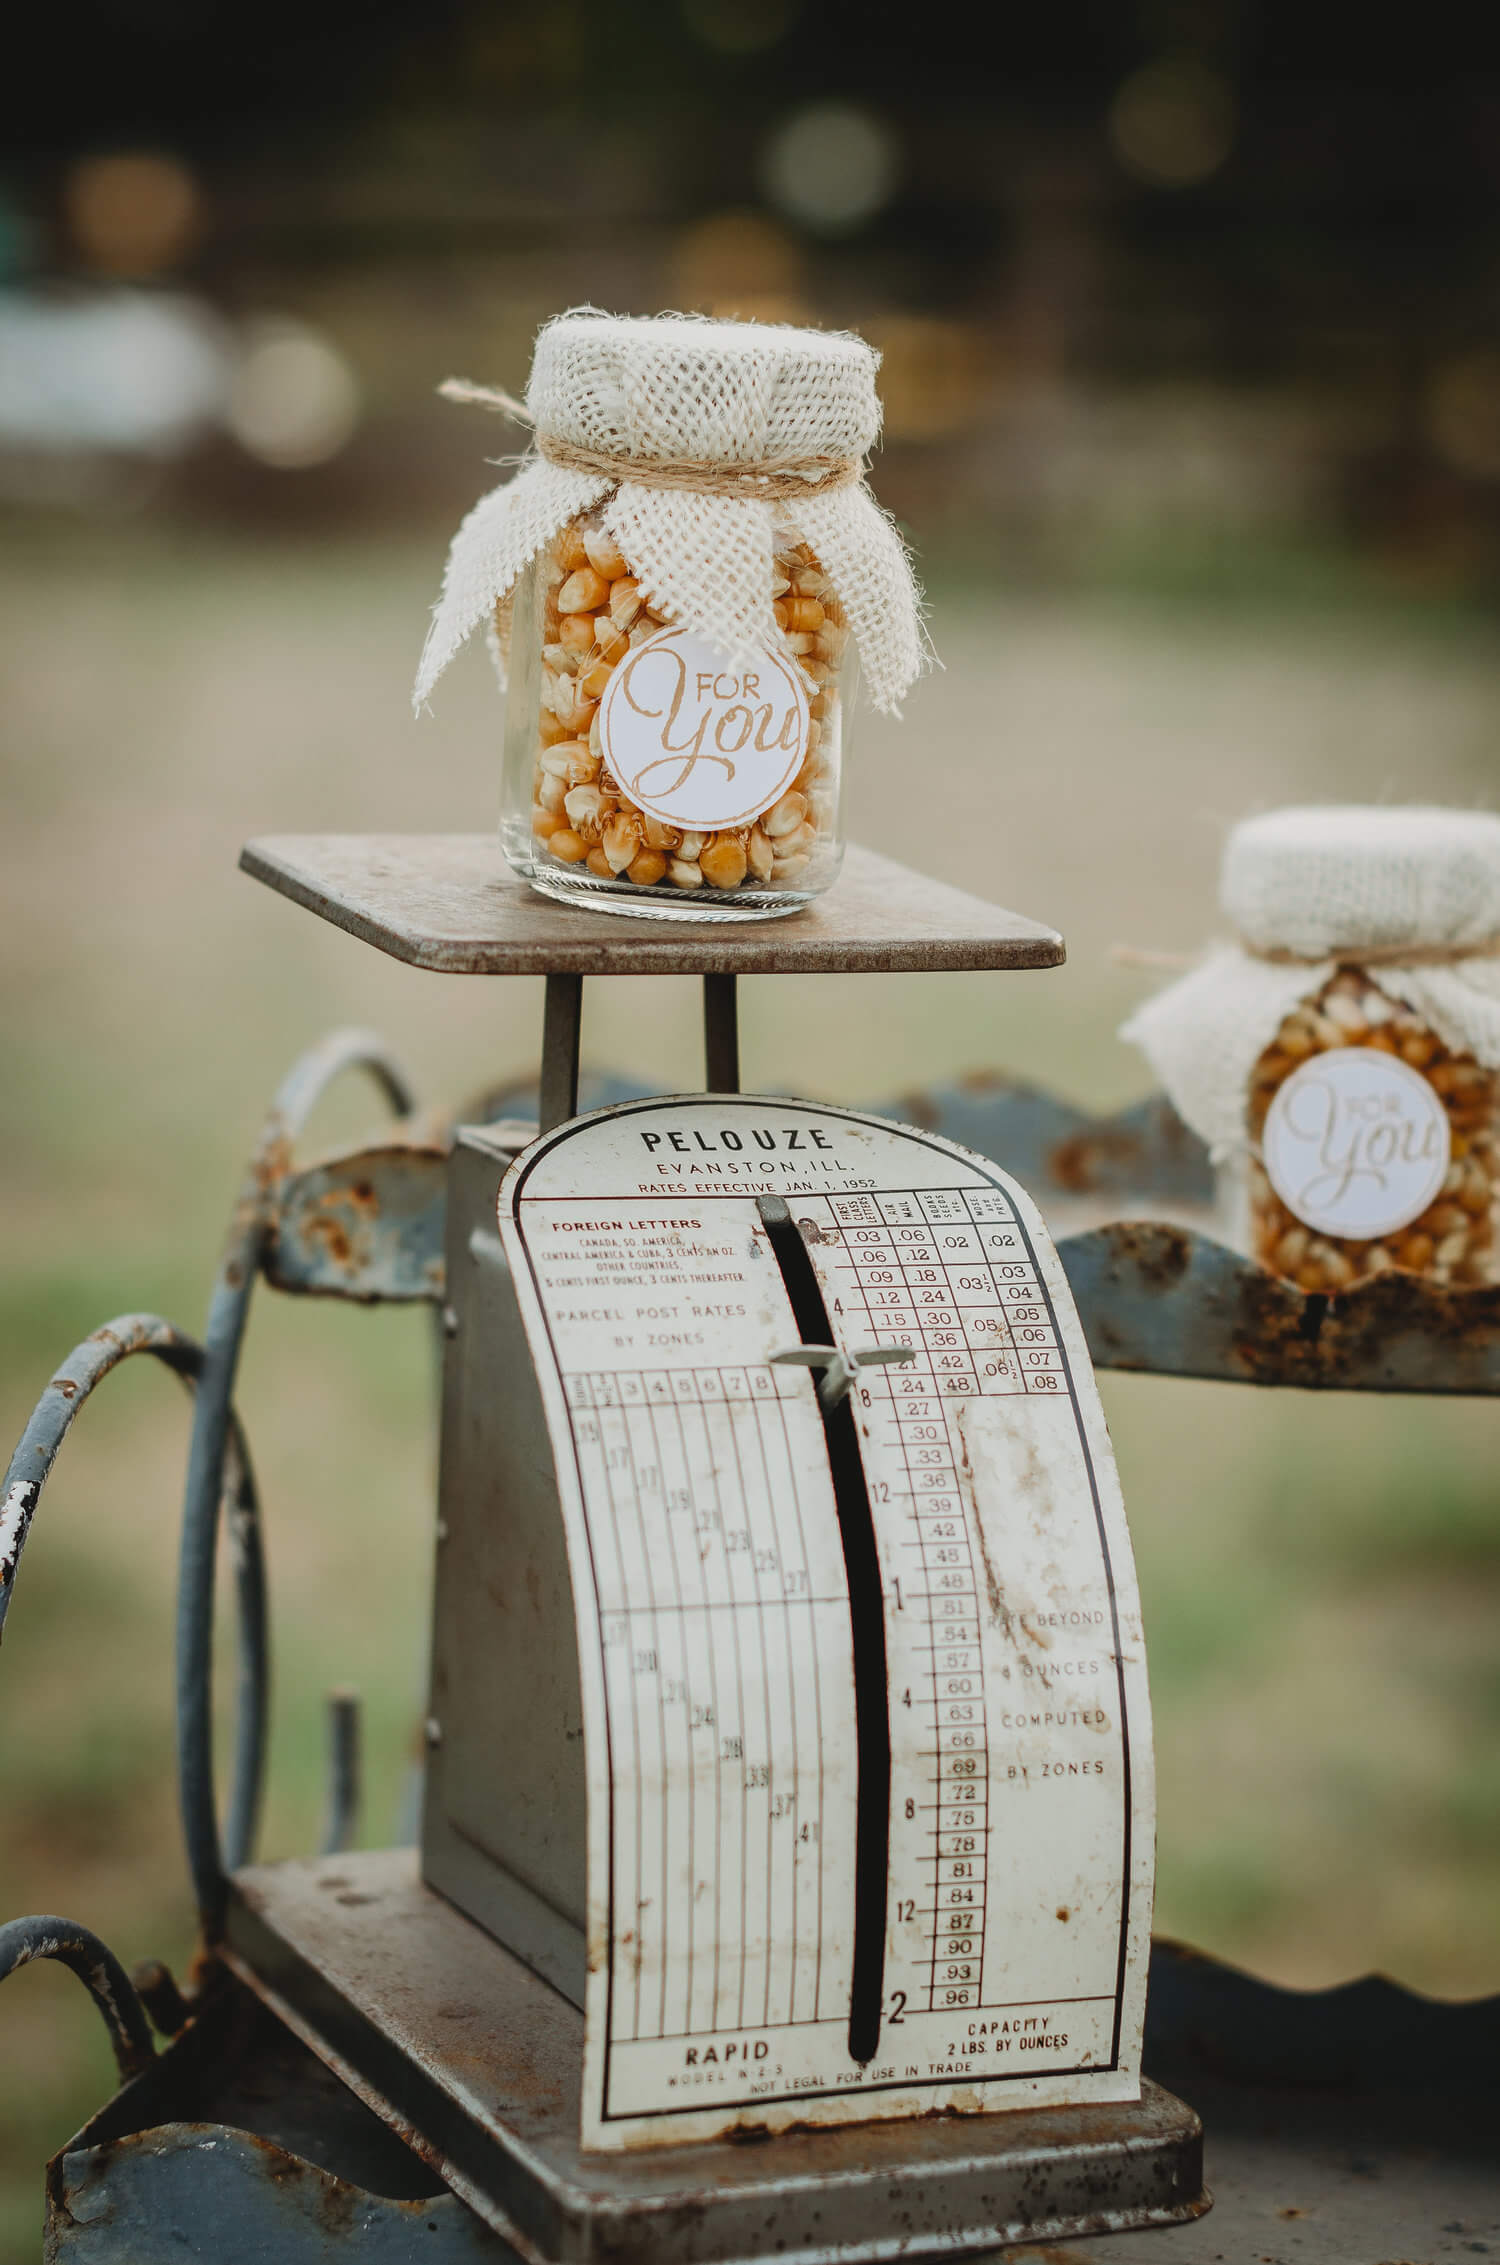 Find unique items to display your party favors on. Click to see even more rustic party ideas from this fall themed bridal shower. Created by party stylist Mint Event Design. #bridalshowers #bridalshowerideas #rusticwedding #rusticbridalshower #bridalshowerdecor #farmwedding #partyideas #fallbridalshower